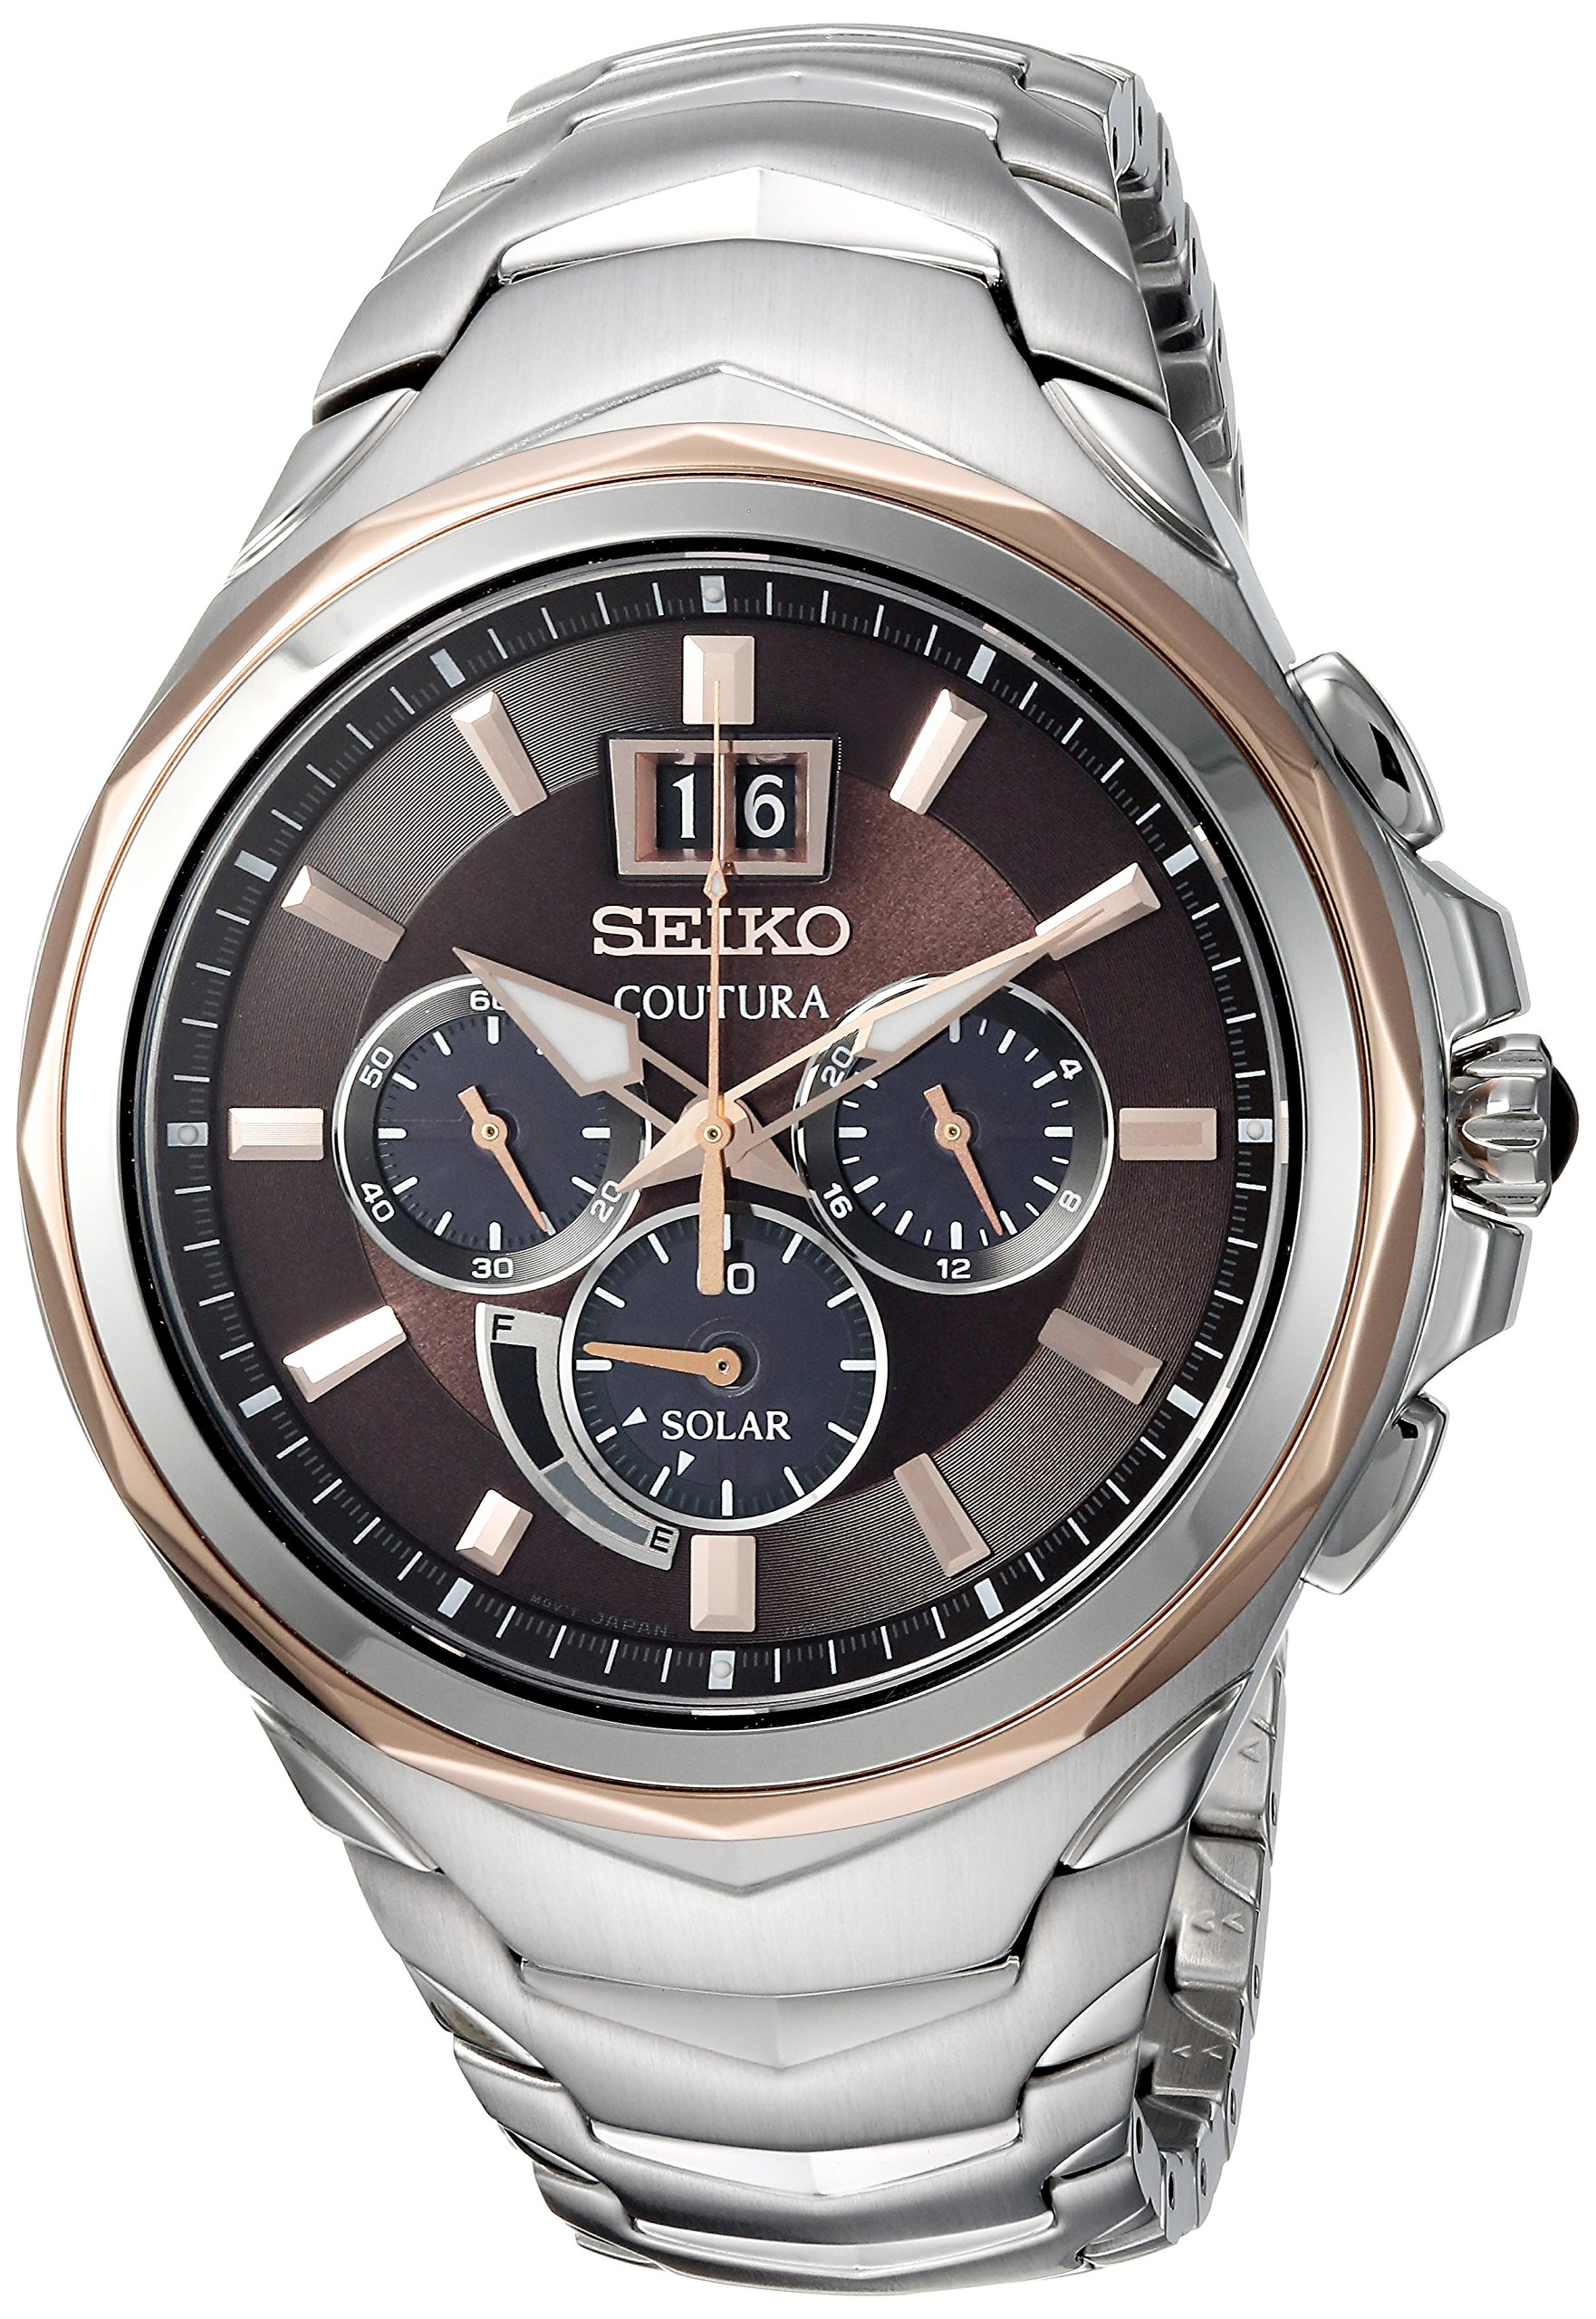 Seiko Men's 'COUTURA CHRONOGRAPH' Quartz Stainless Steel Casual Watch, Color:Two Tone (Model: SSC628)